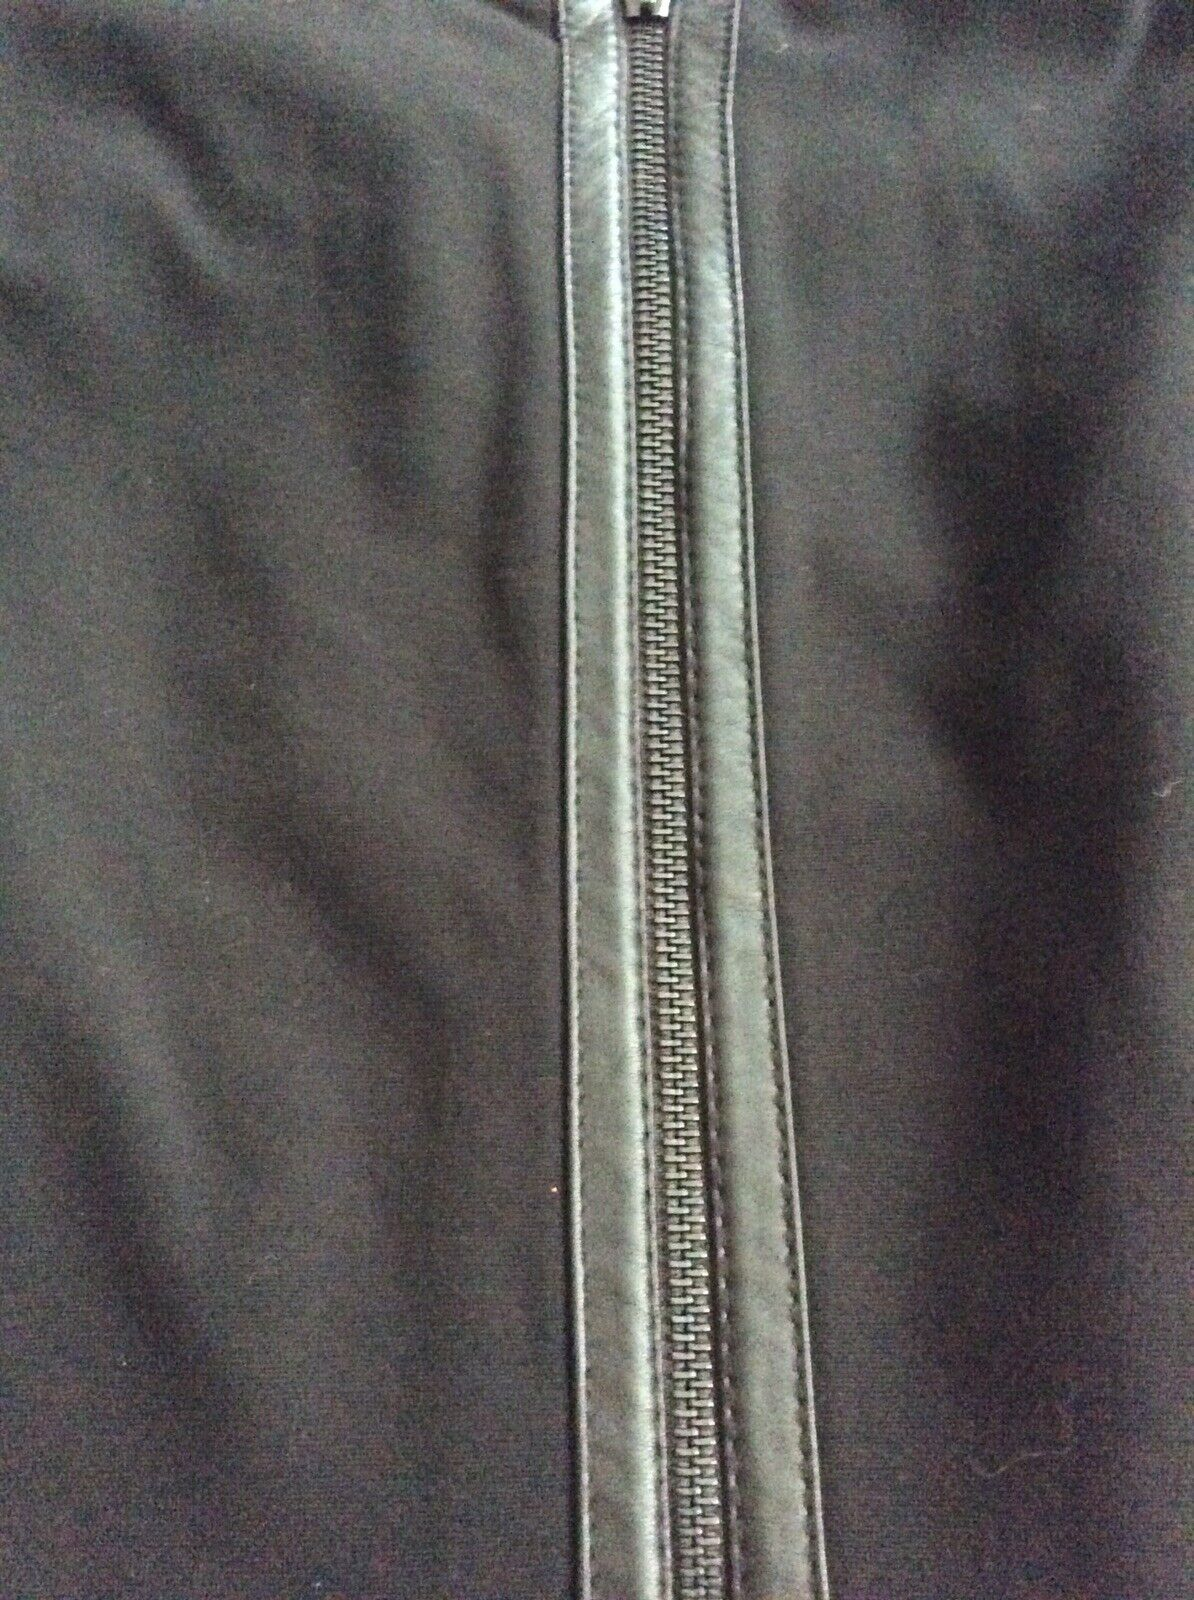 Worth Brown Dress size 6 full front zipper - image 7